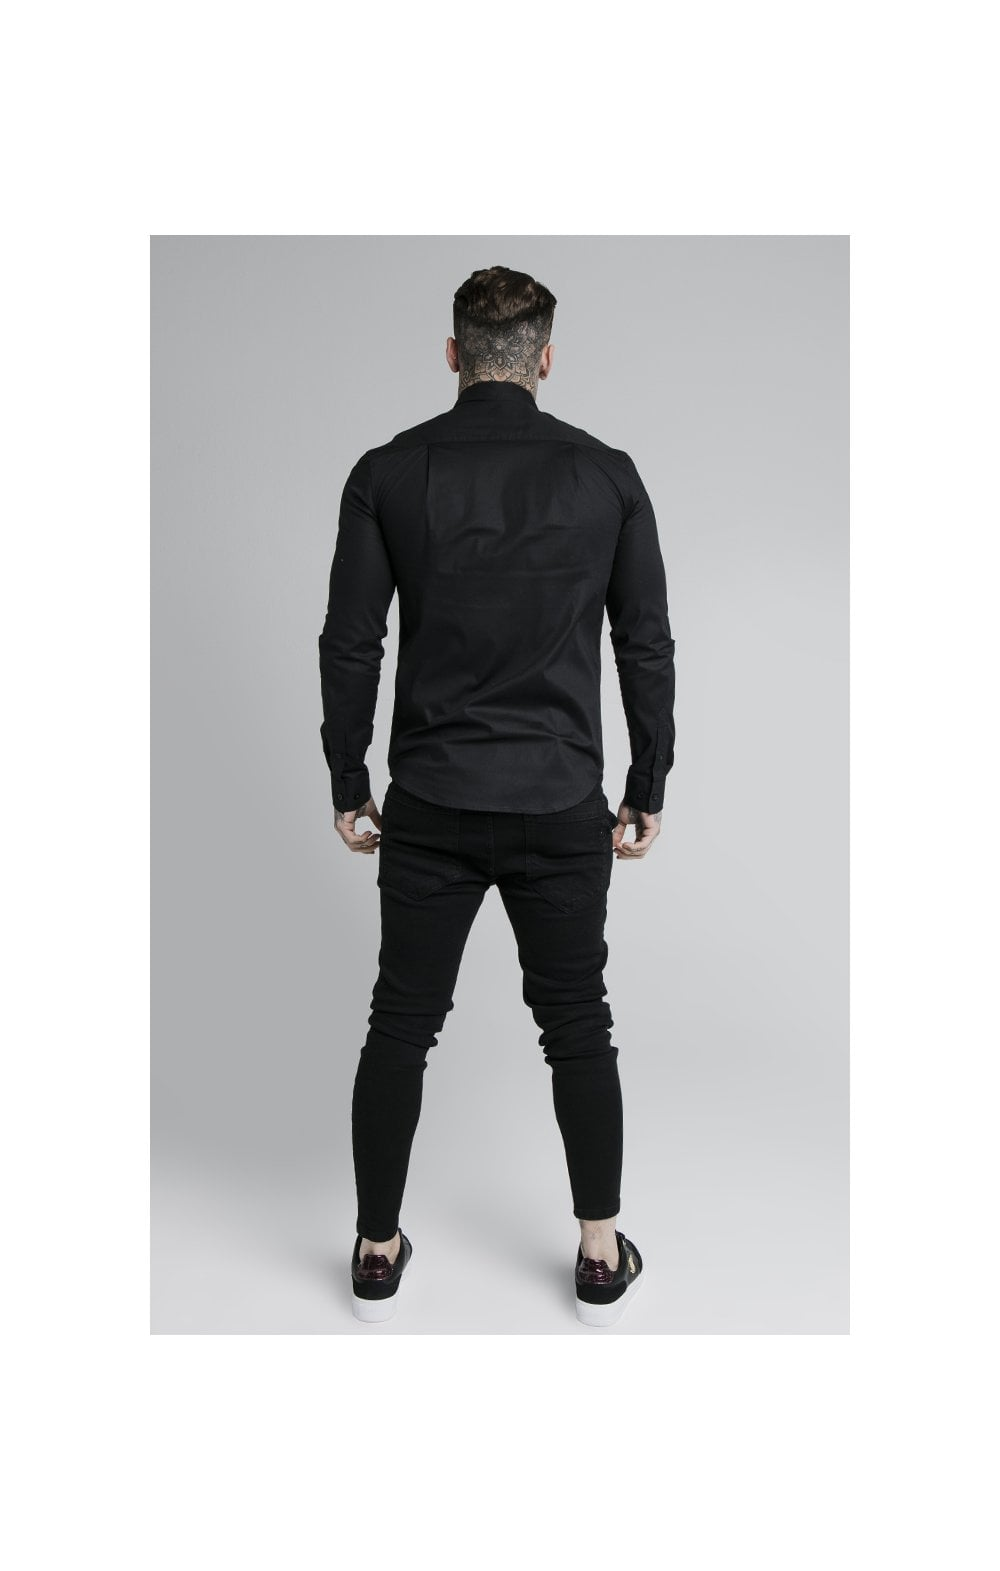 Load image into Gallery viewer, SikSilk L/S Fade Piping Shirt - Black & Neon Fade (5)